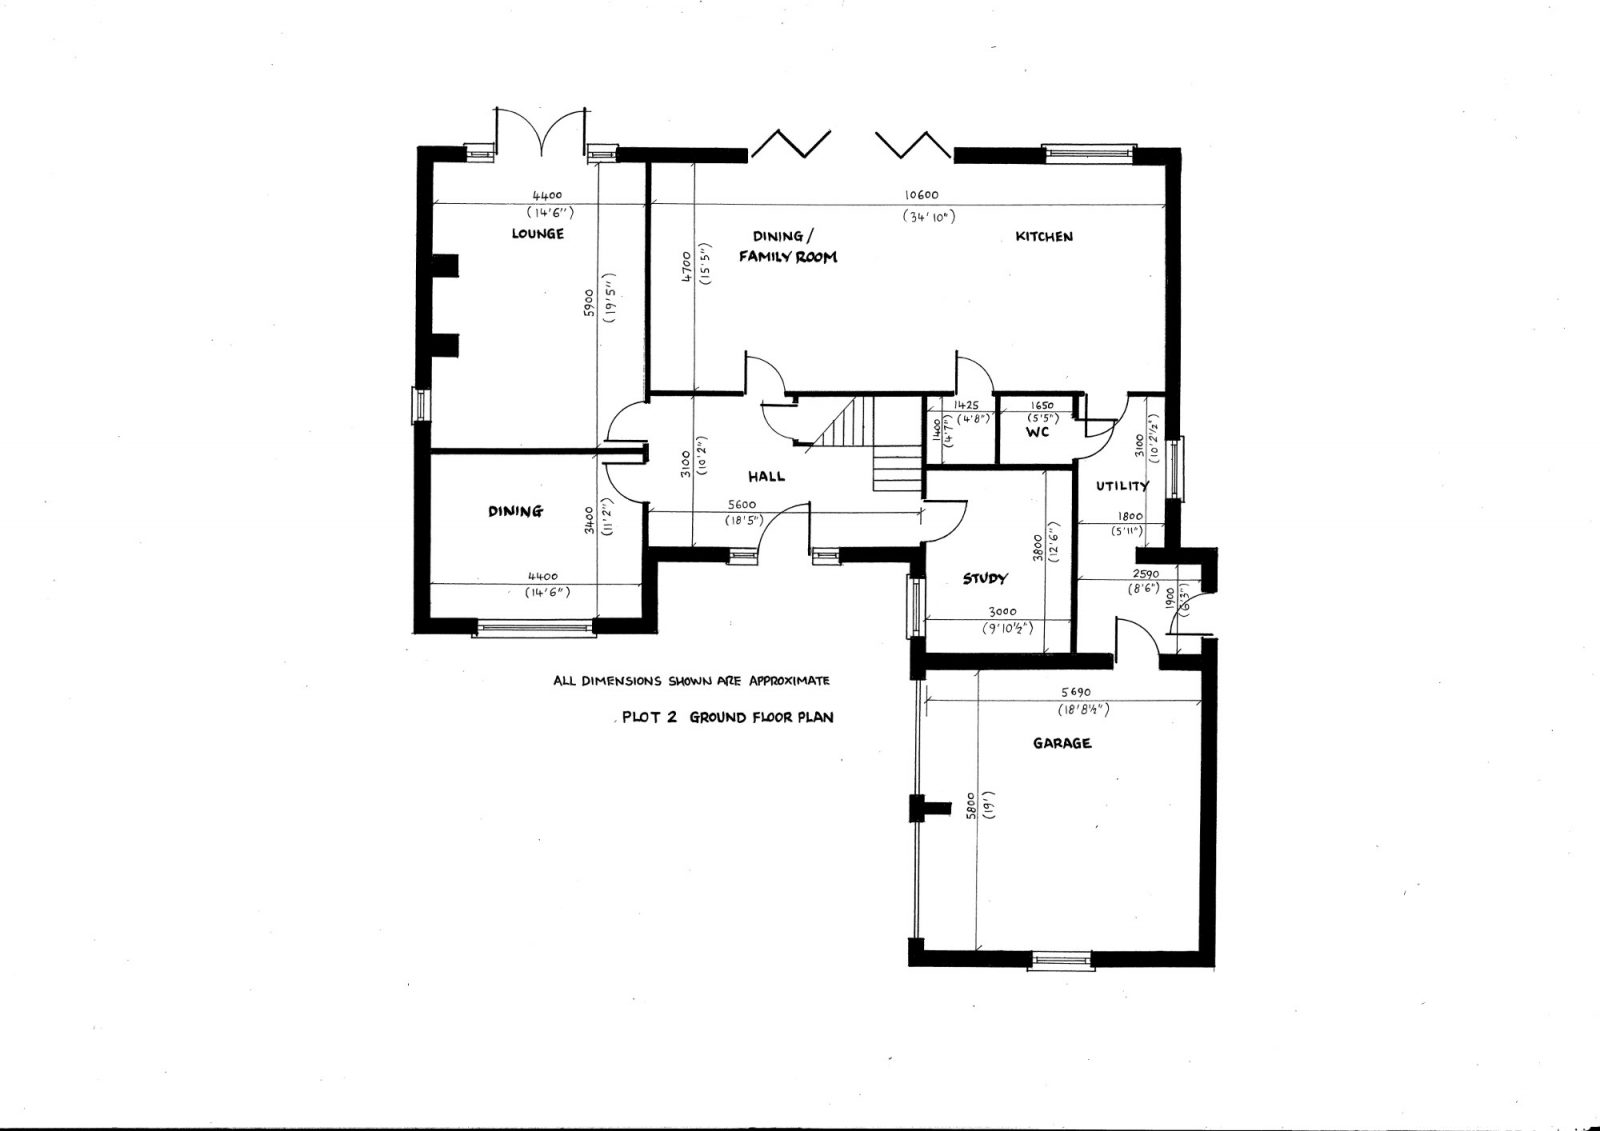 plot 2 side ground floor plan